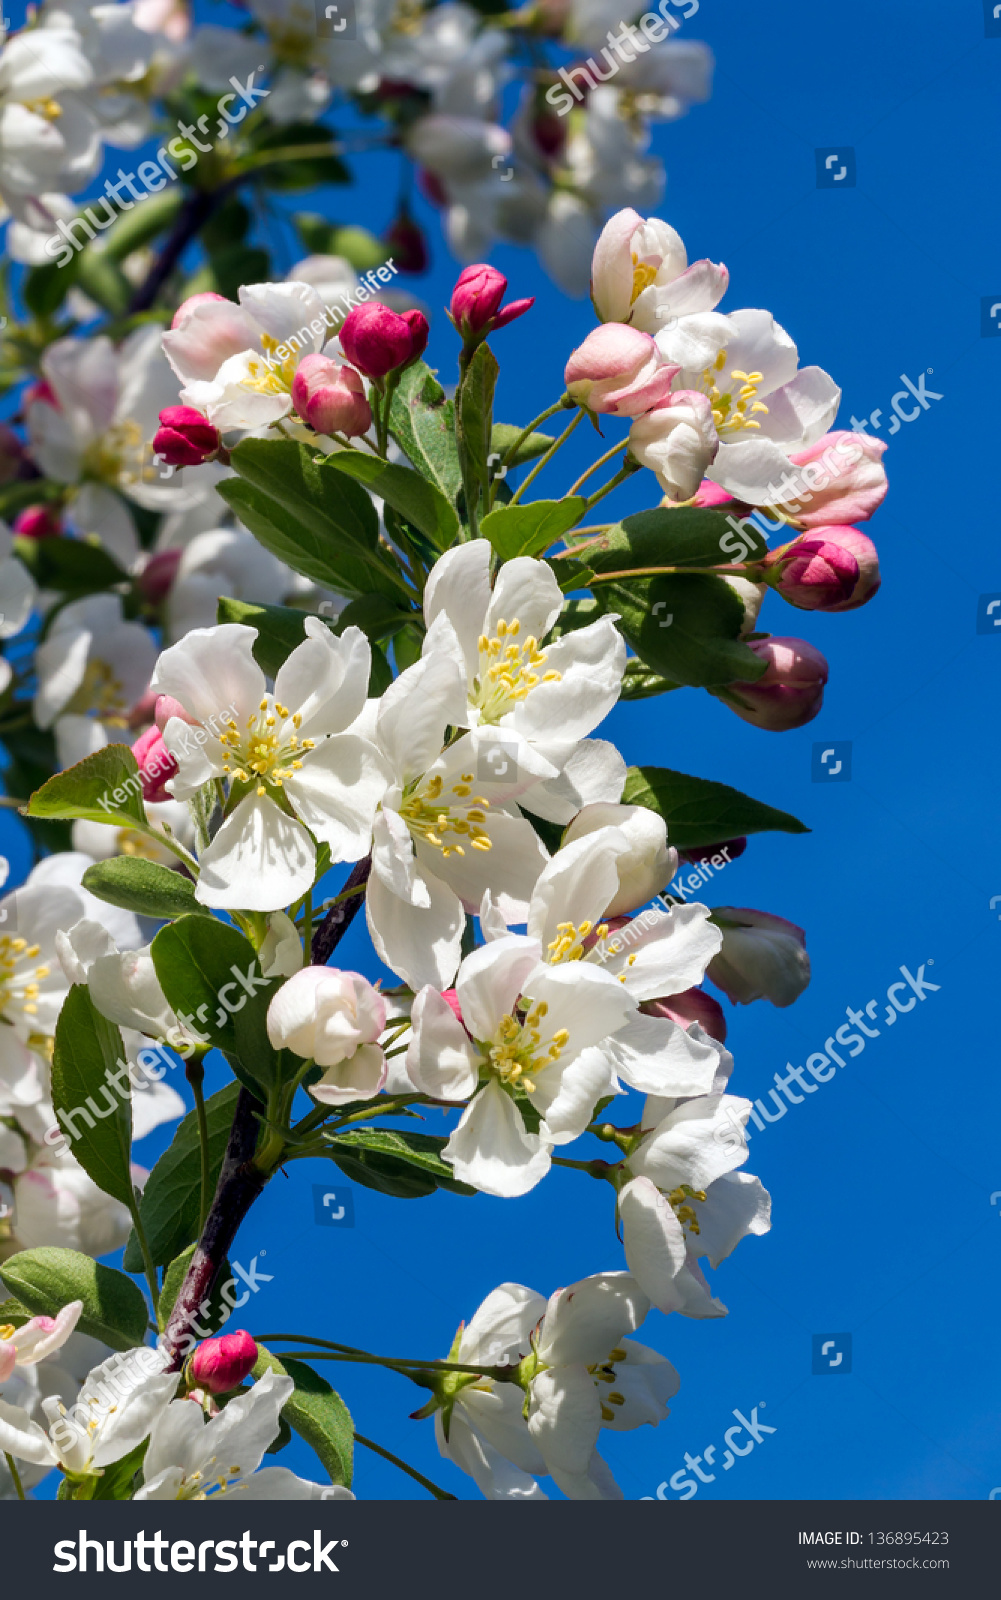 Dazzling White Flower Blossoms Pink Unopened Stock Photo Edit Now